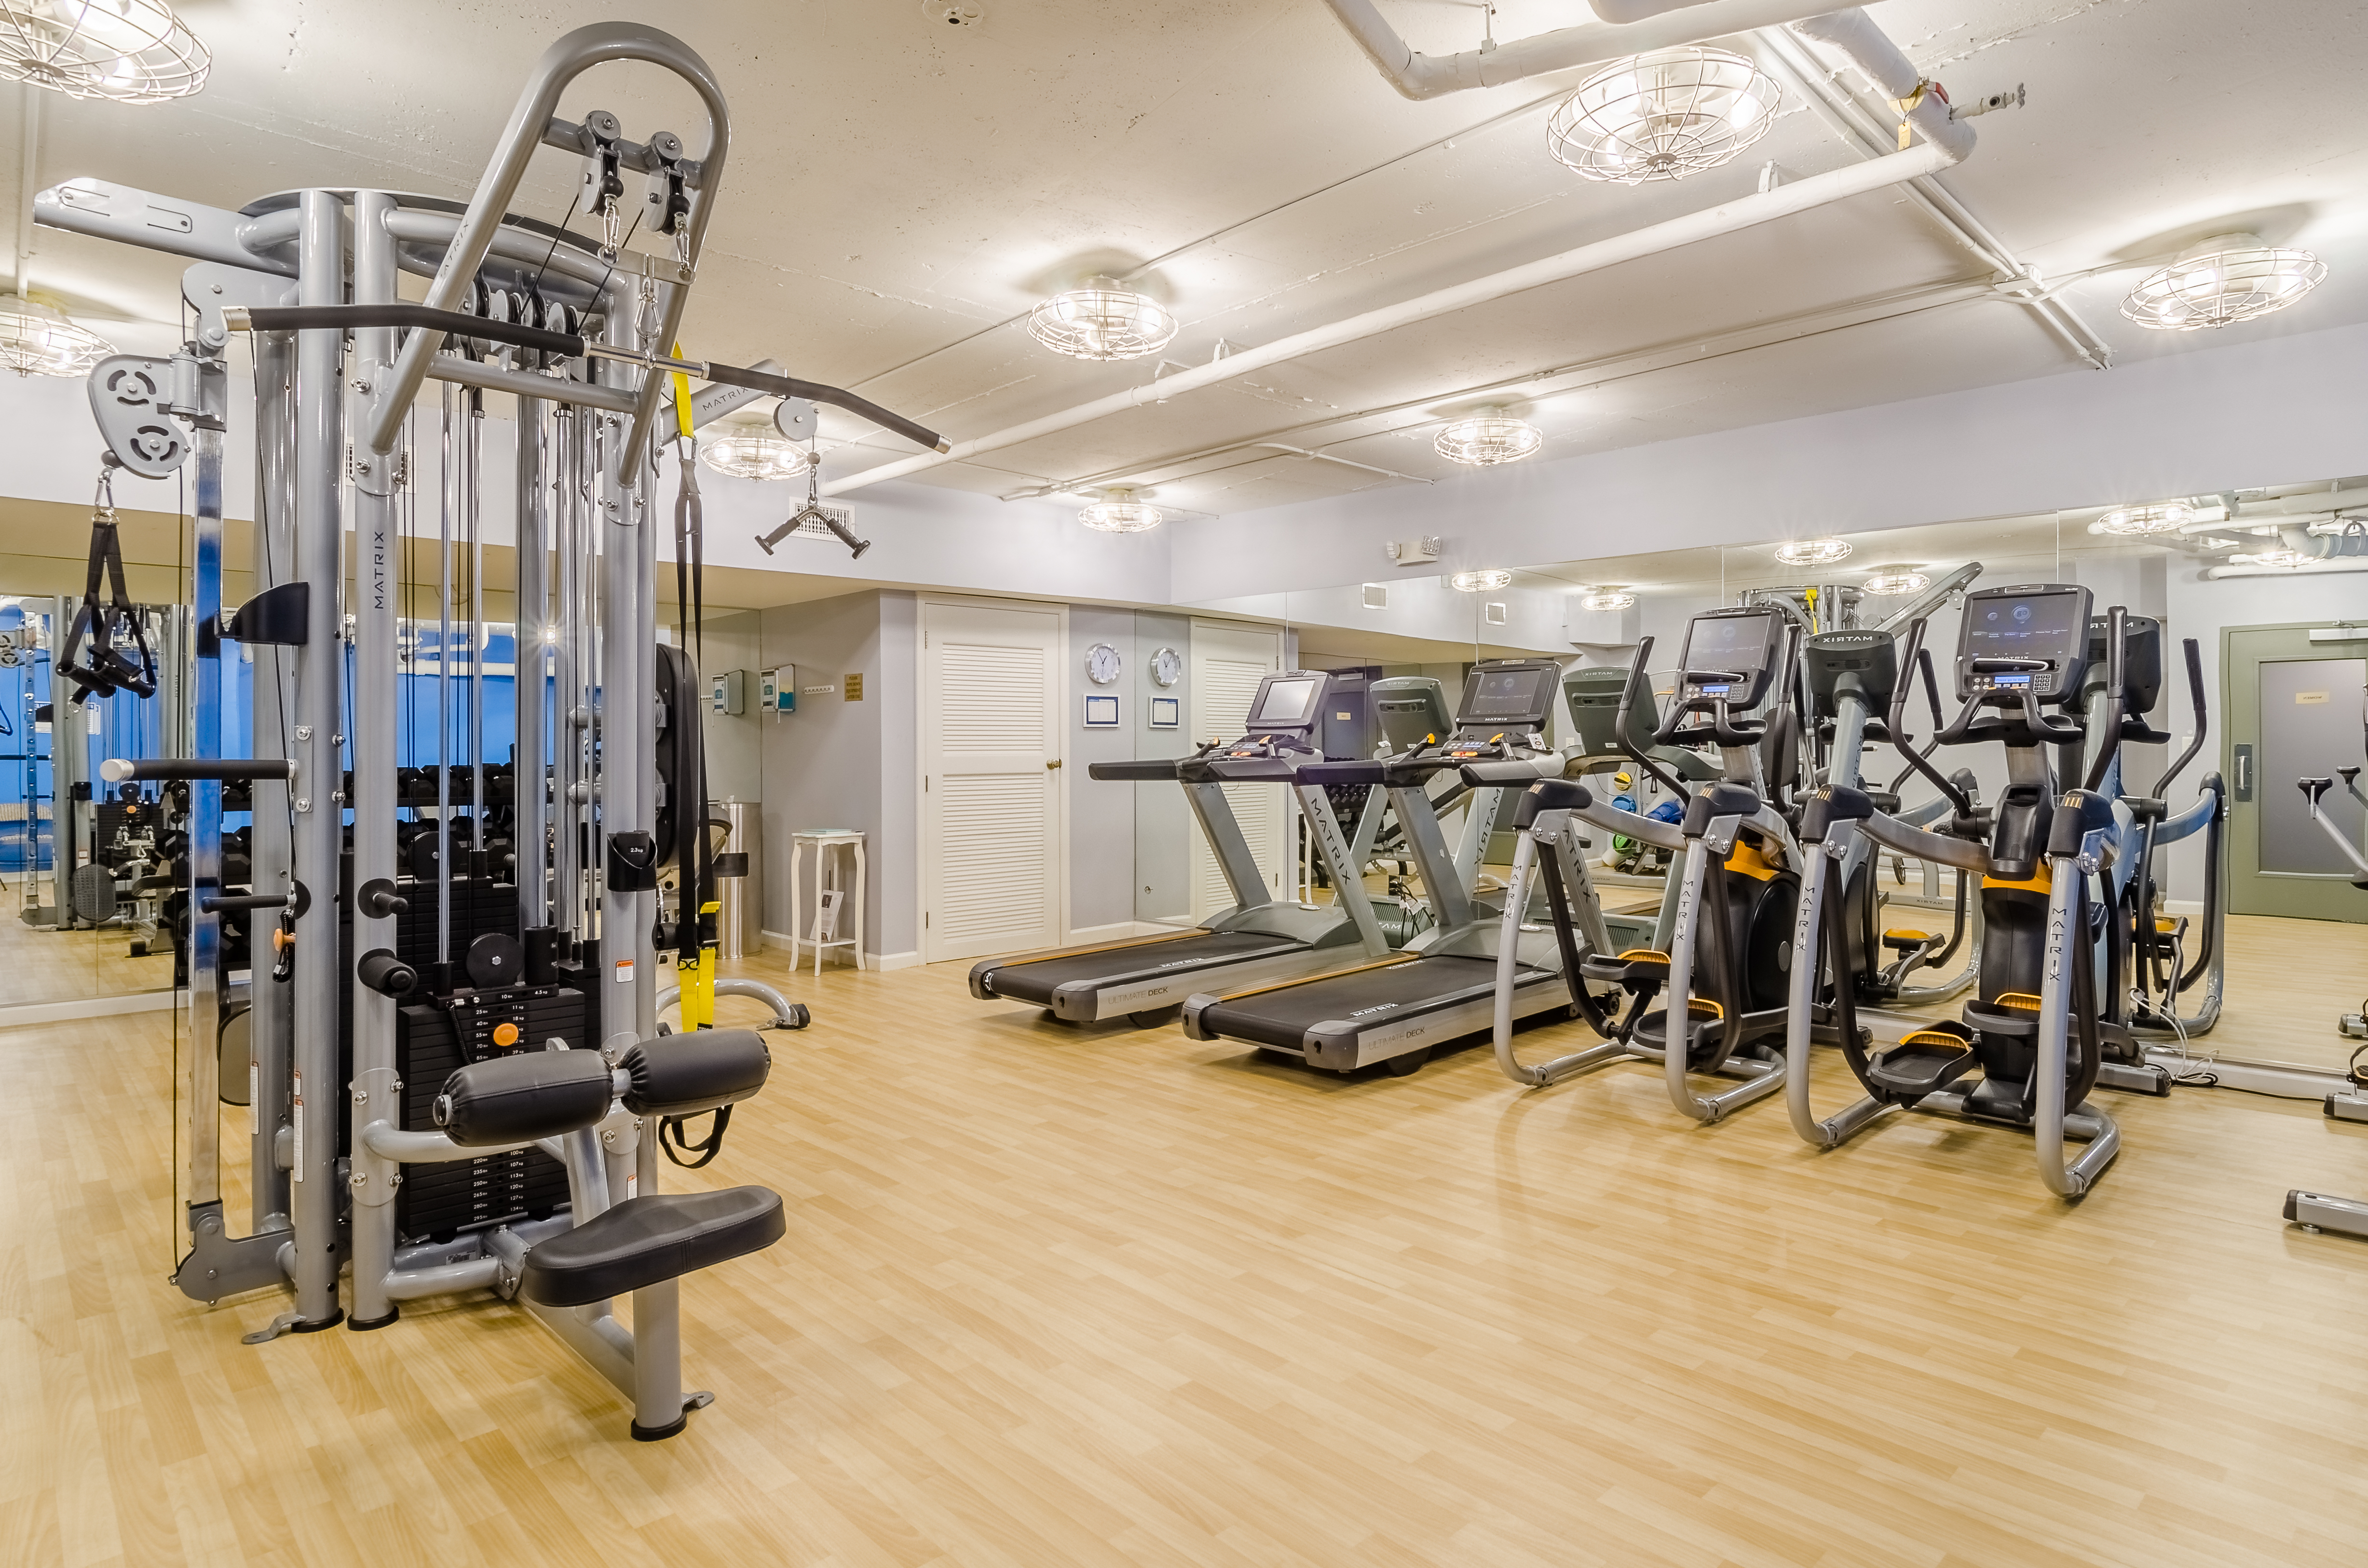 19_Watergate South Fitness Center 01.jpg